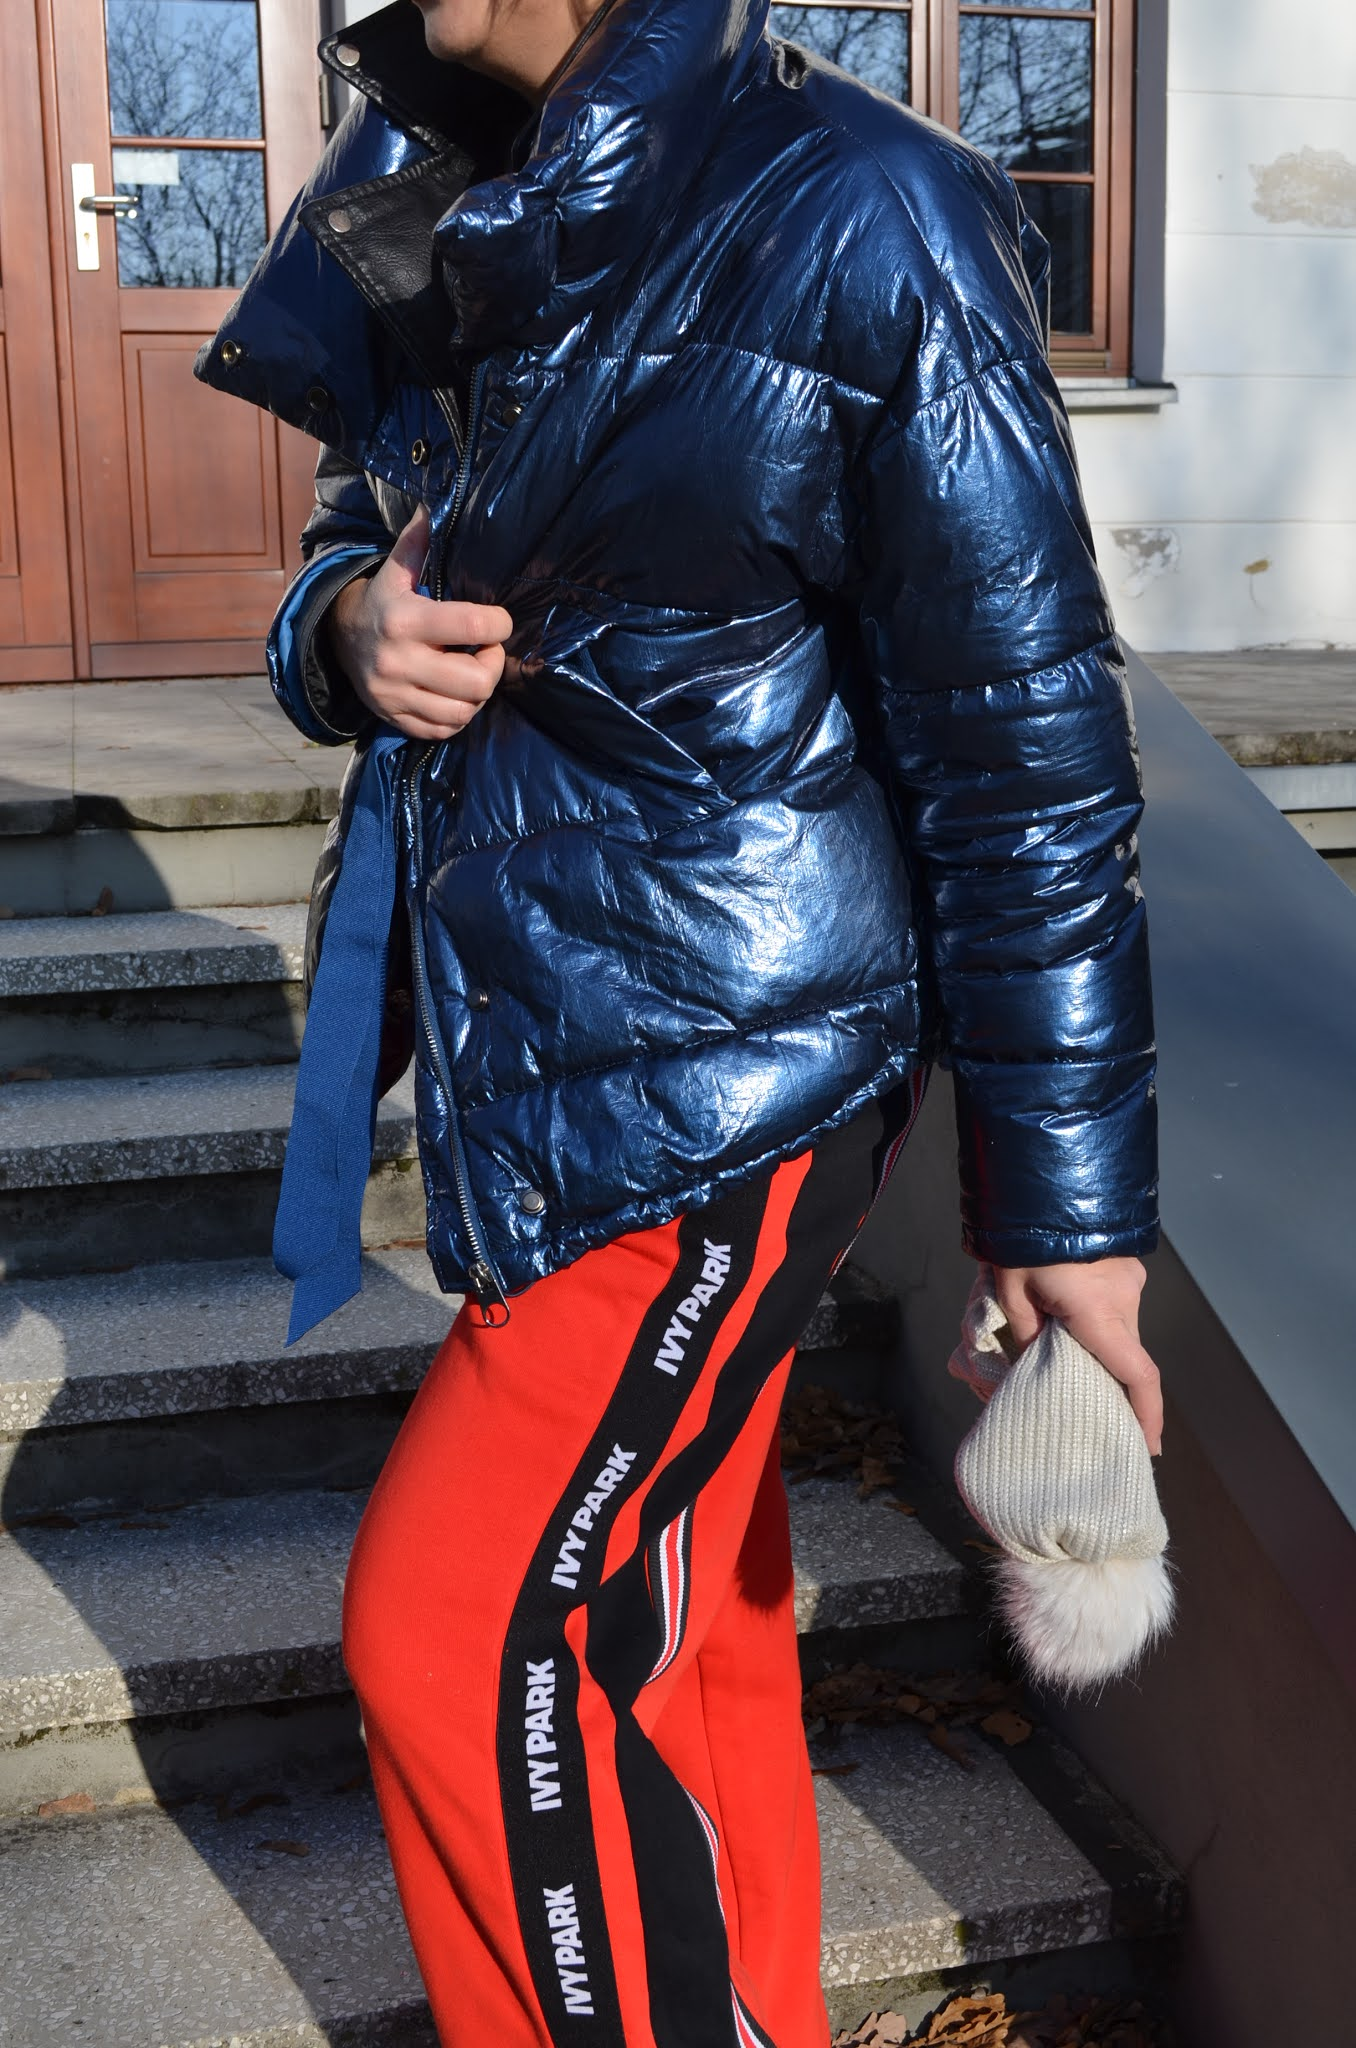 @adrianastyle_stylist;moda;fashion;ivy park trousers;zara puffa jacket;winter outfit;Reserved winter boots;Ivy Park Wide Trousers;winter mood;